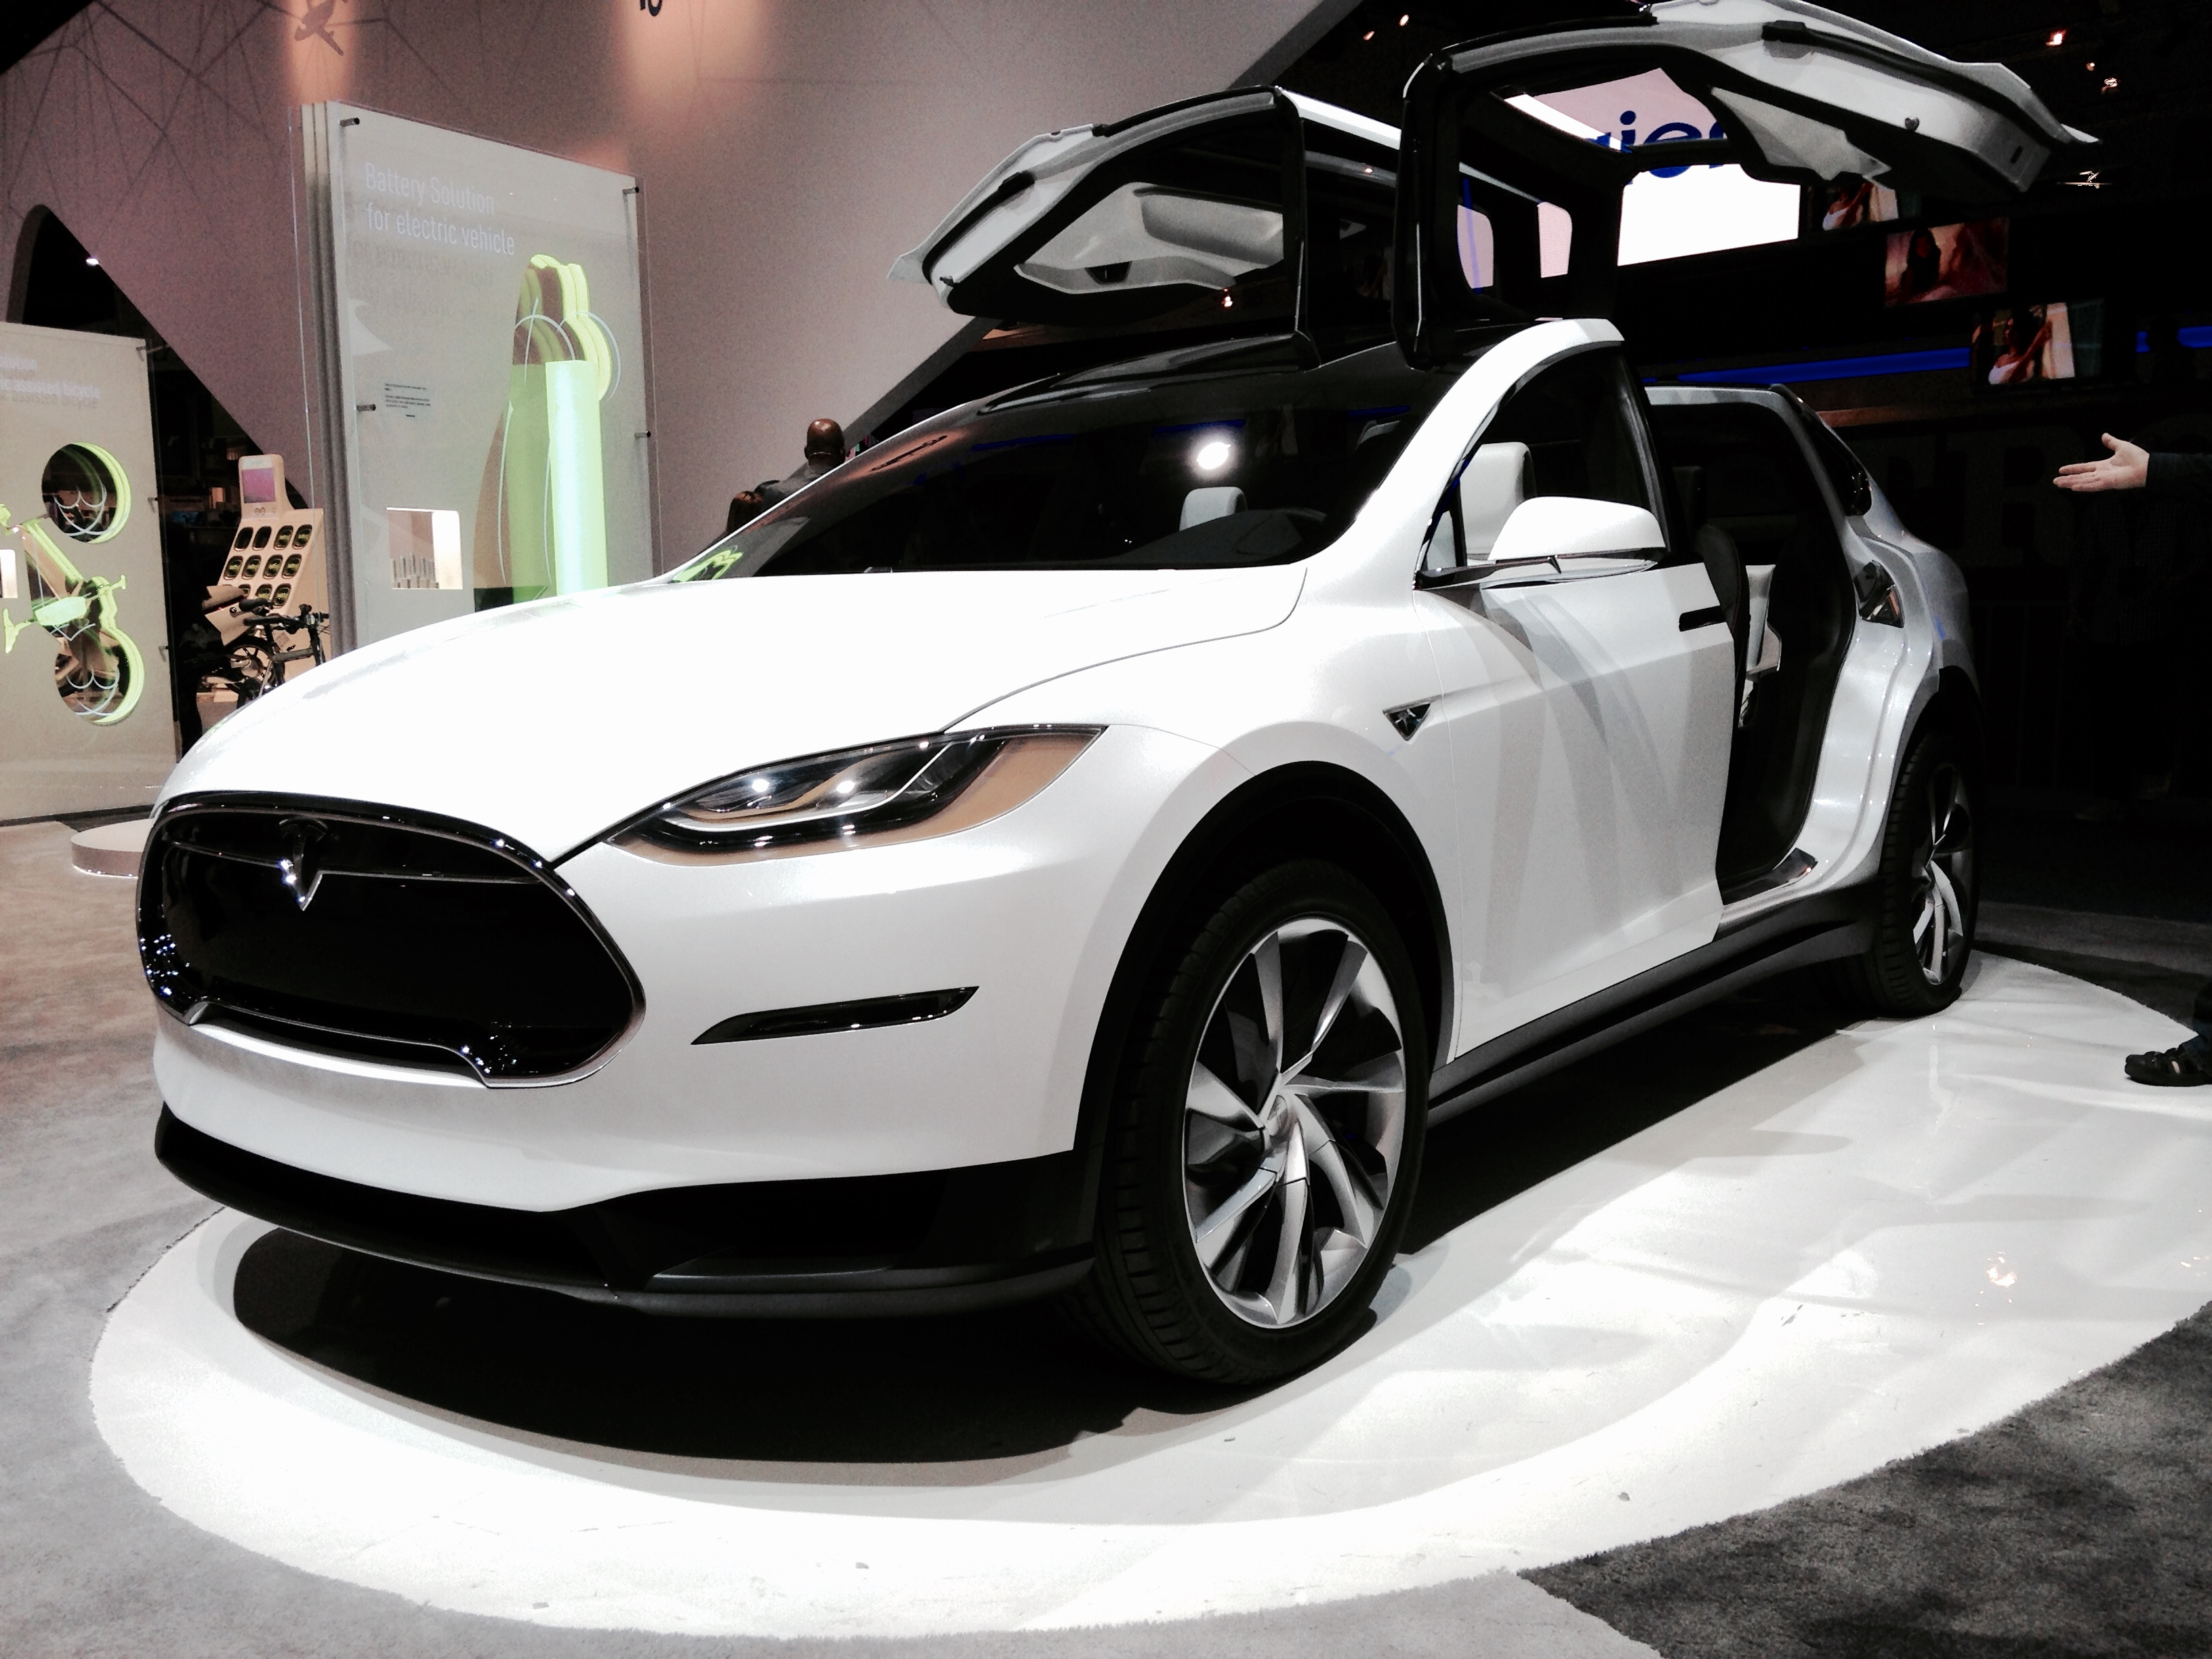 ford paid 200 000 for an early tesla model x founders series edition autoevolution. Black Bedroom Furniture Sets. Home Design Ideas